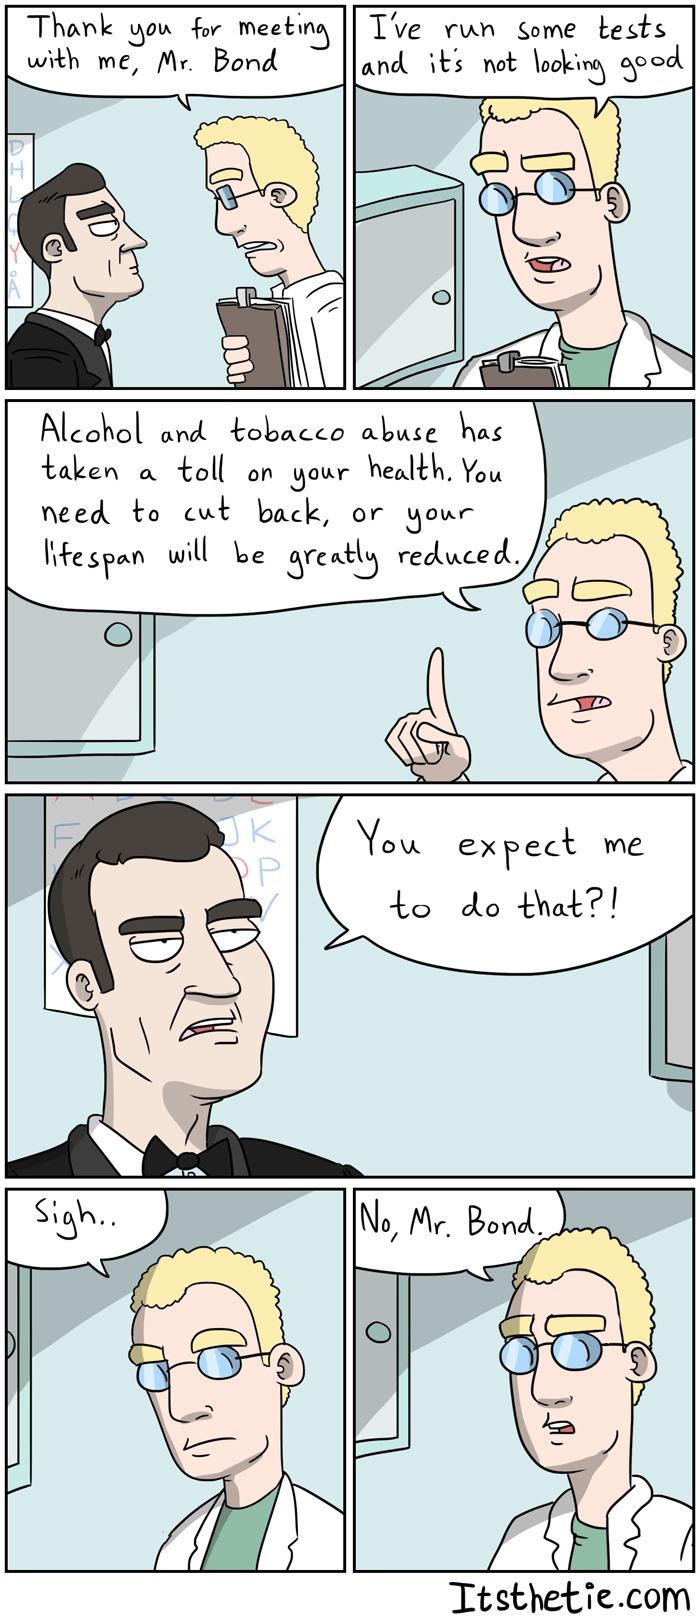 web-comics-reference-to-james-bond-goldfinger-doctor-prognosis